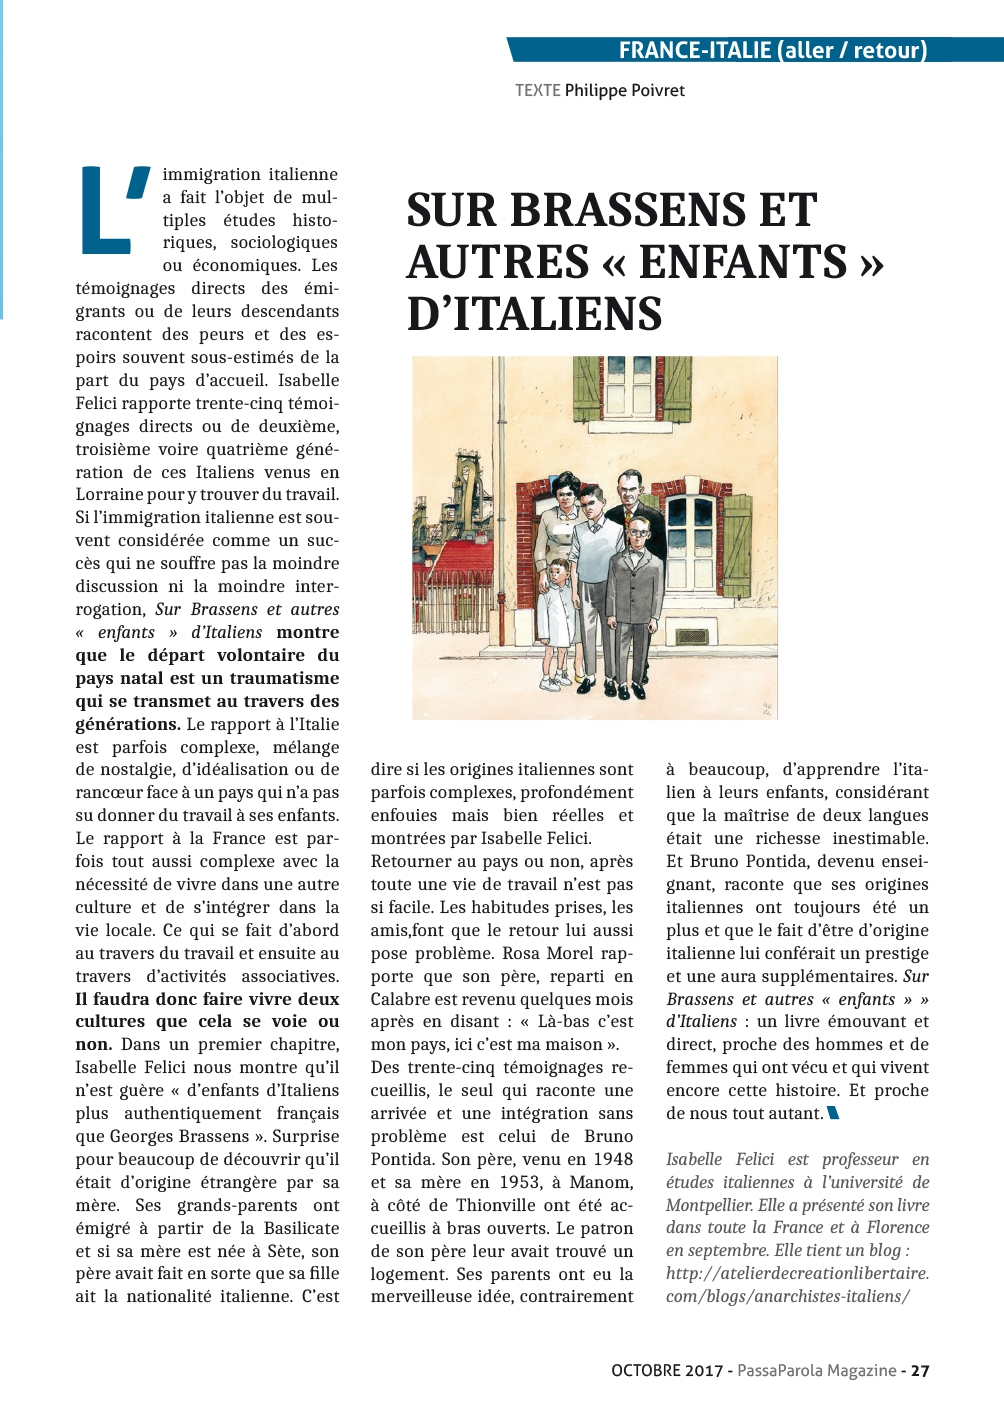 Article paru dans la presse internationale